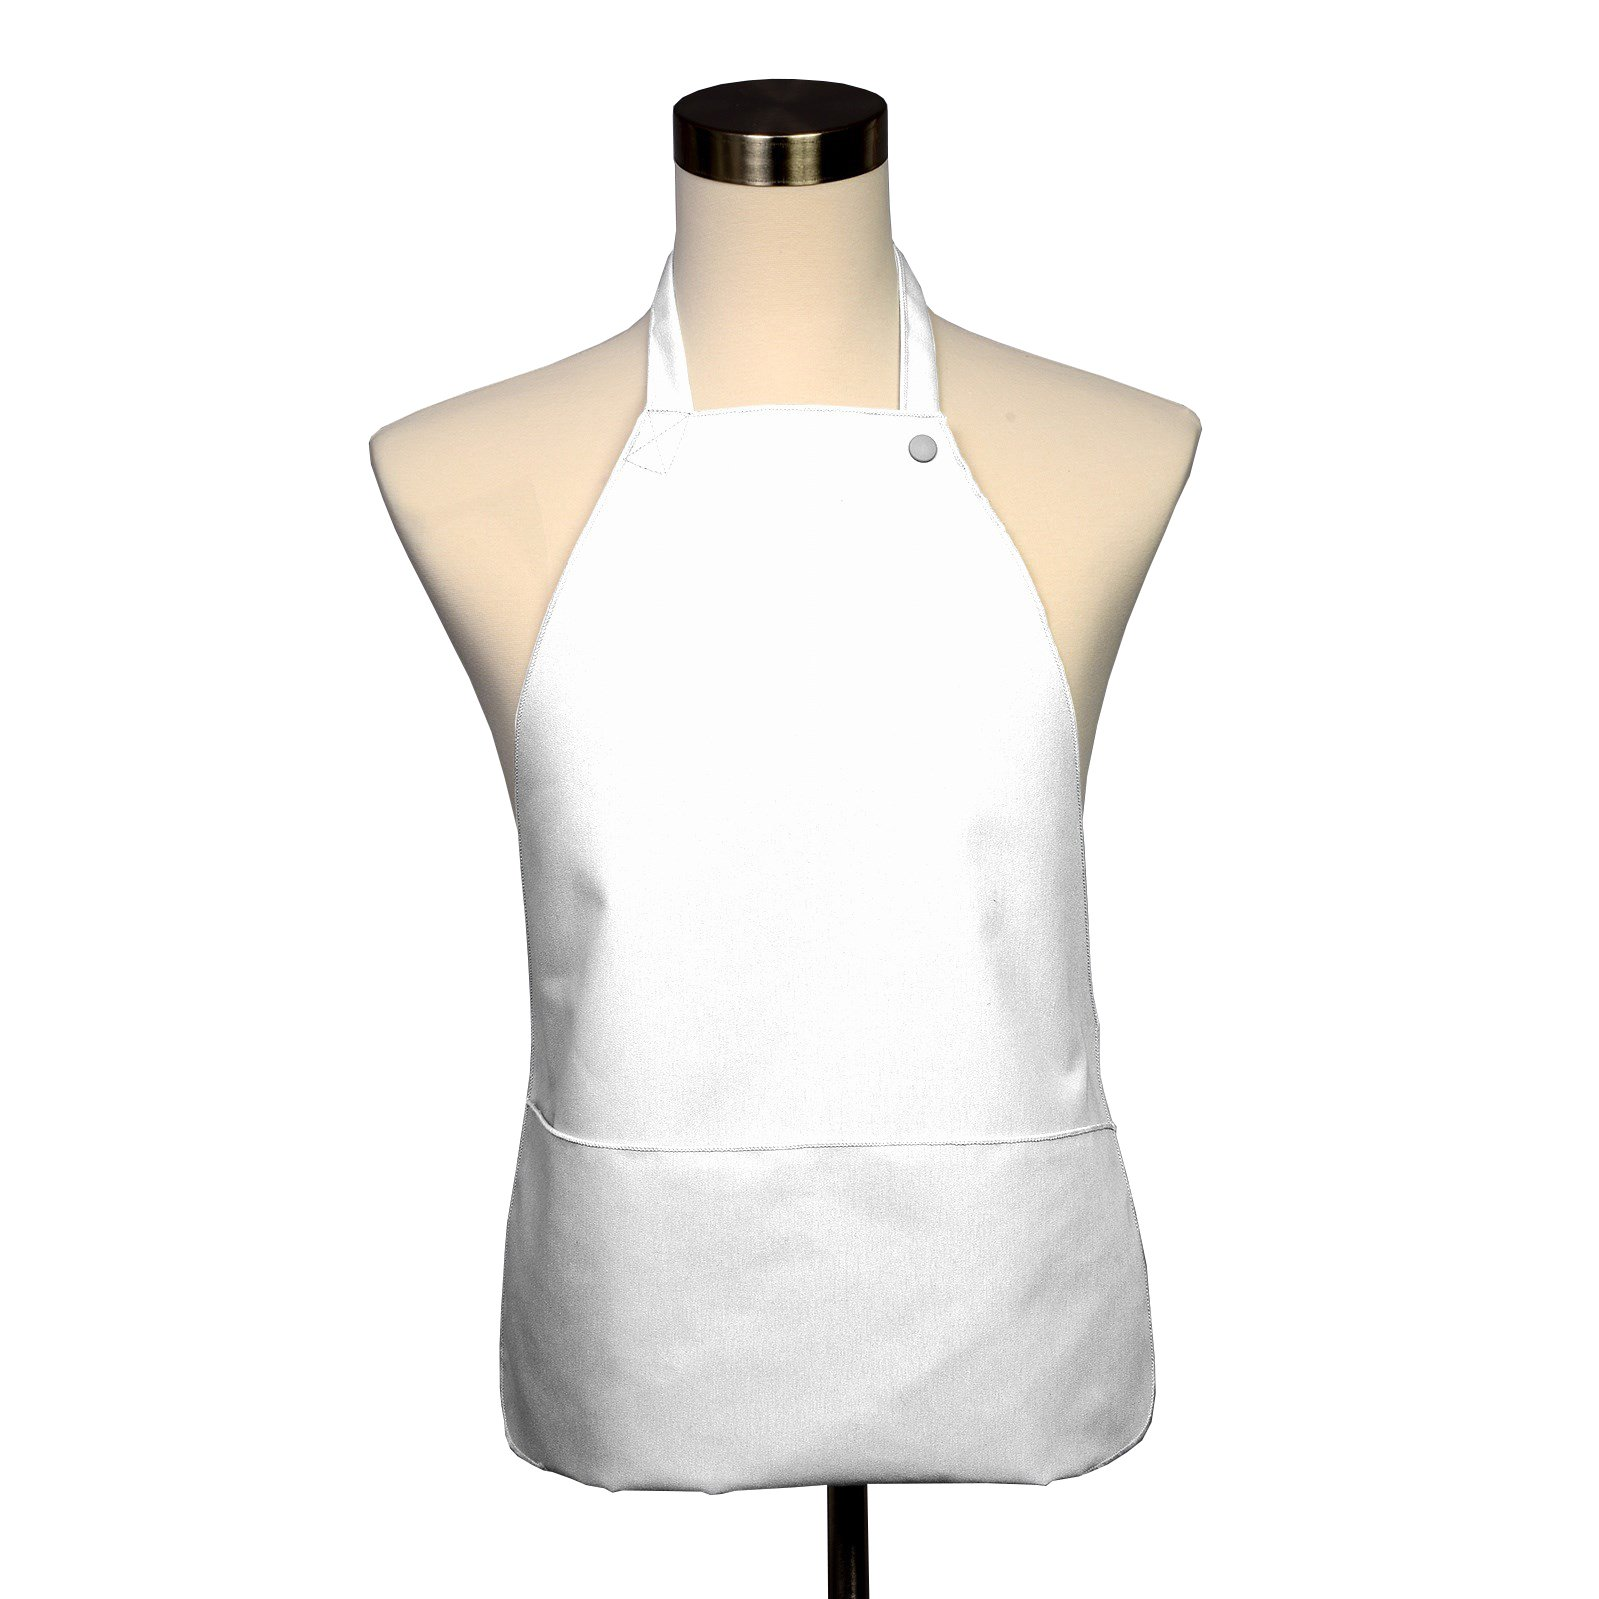 Adult Bib 10 Pack - Covered with Care Assorted Colors Available! (White)